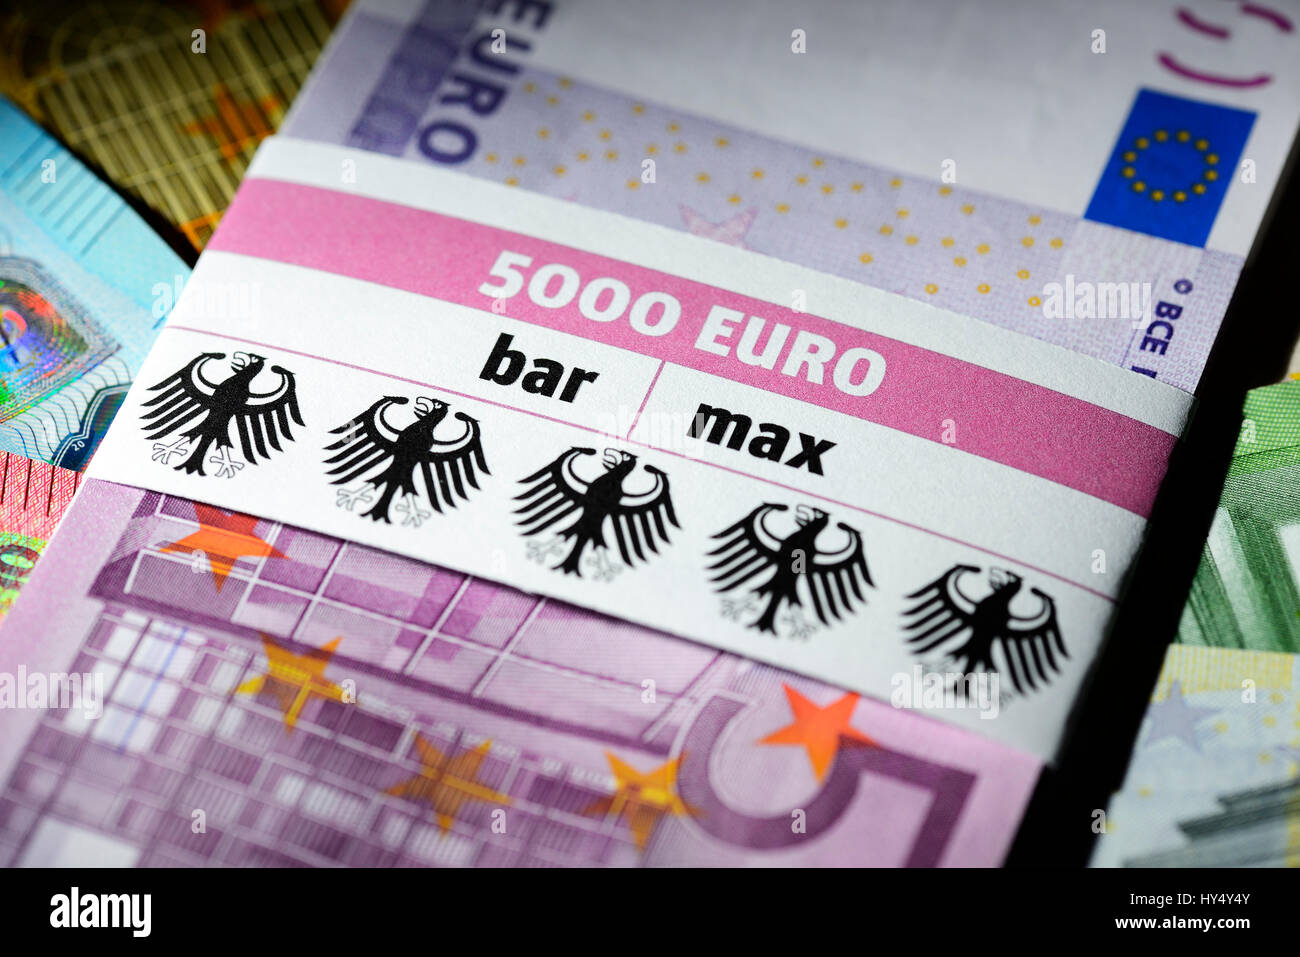 Bank notes with banderole 5000 euros cash max planned for Badezimmer 5000 euro